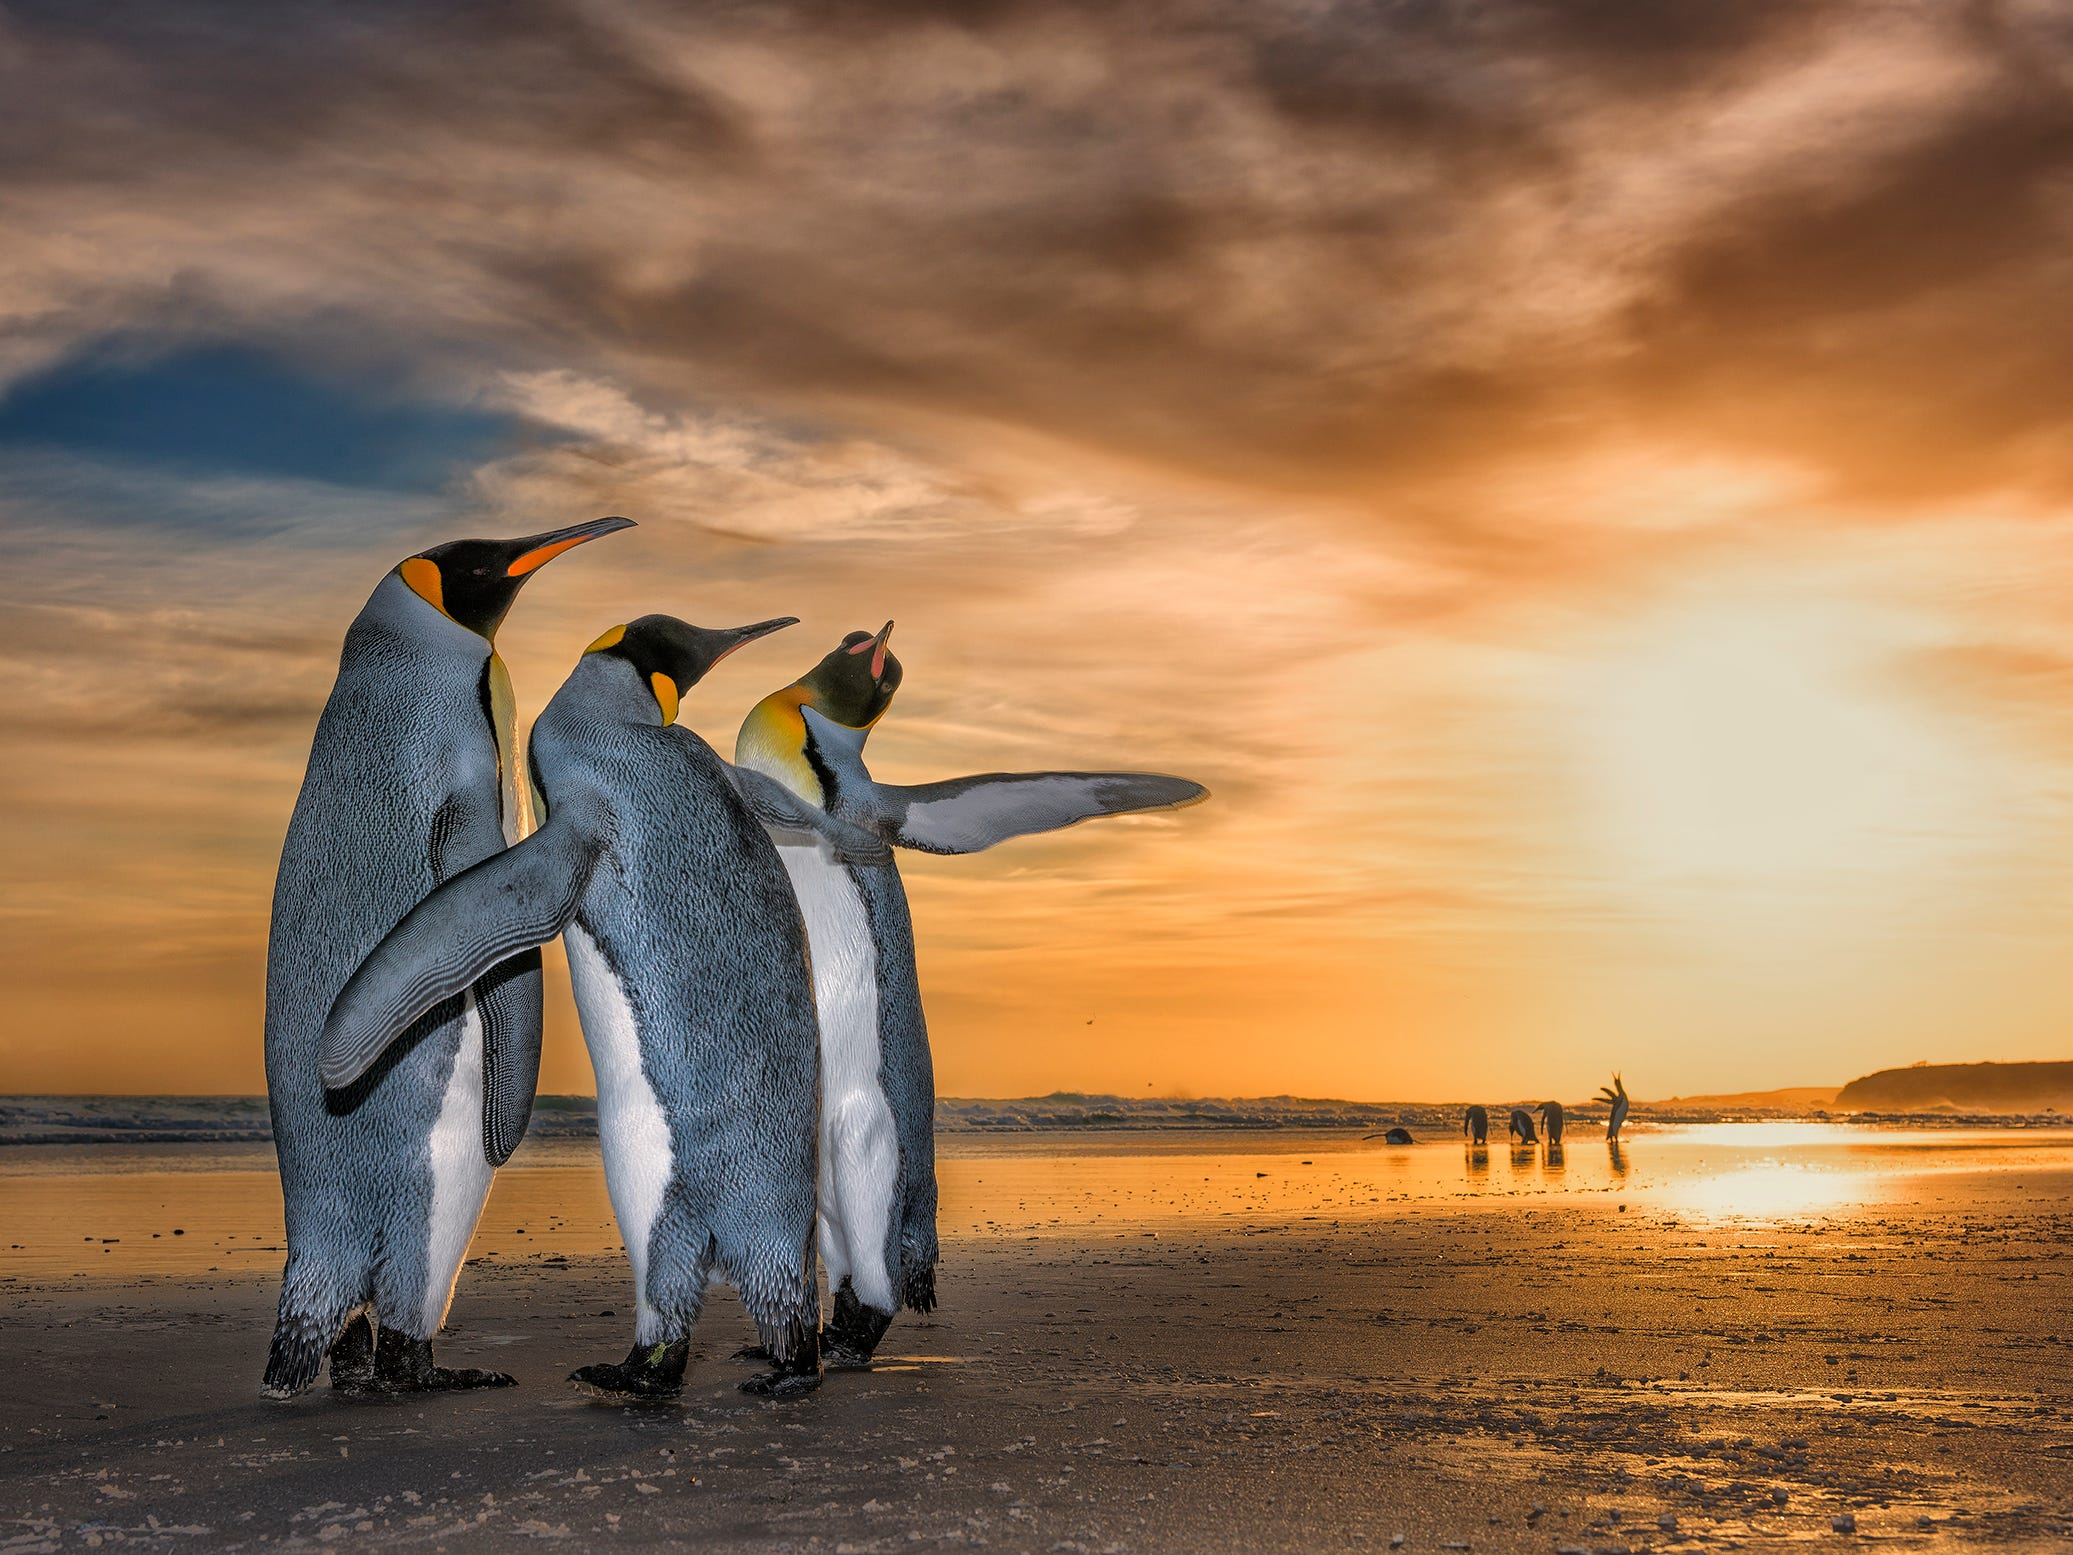 """Wim Van Den Heever's photo """"Three Kings"""" was named Highly Commended by the Wildlife Photographer of the Year LUMIX People's Choice Award. Wim came across these king penguins on a beach in the Falkland Islands just as the sun was rising. They were caught up in a fascinating mating behaviour in which the two males constantly move around the female using their flippers to fend the other off."""